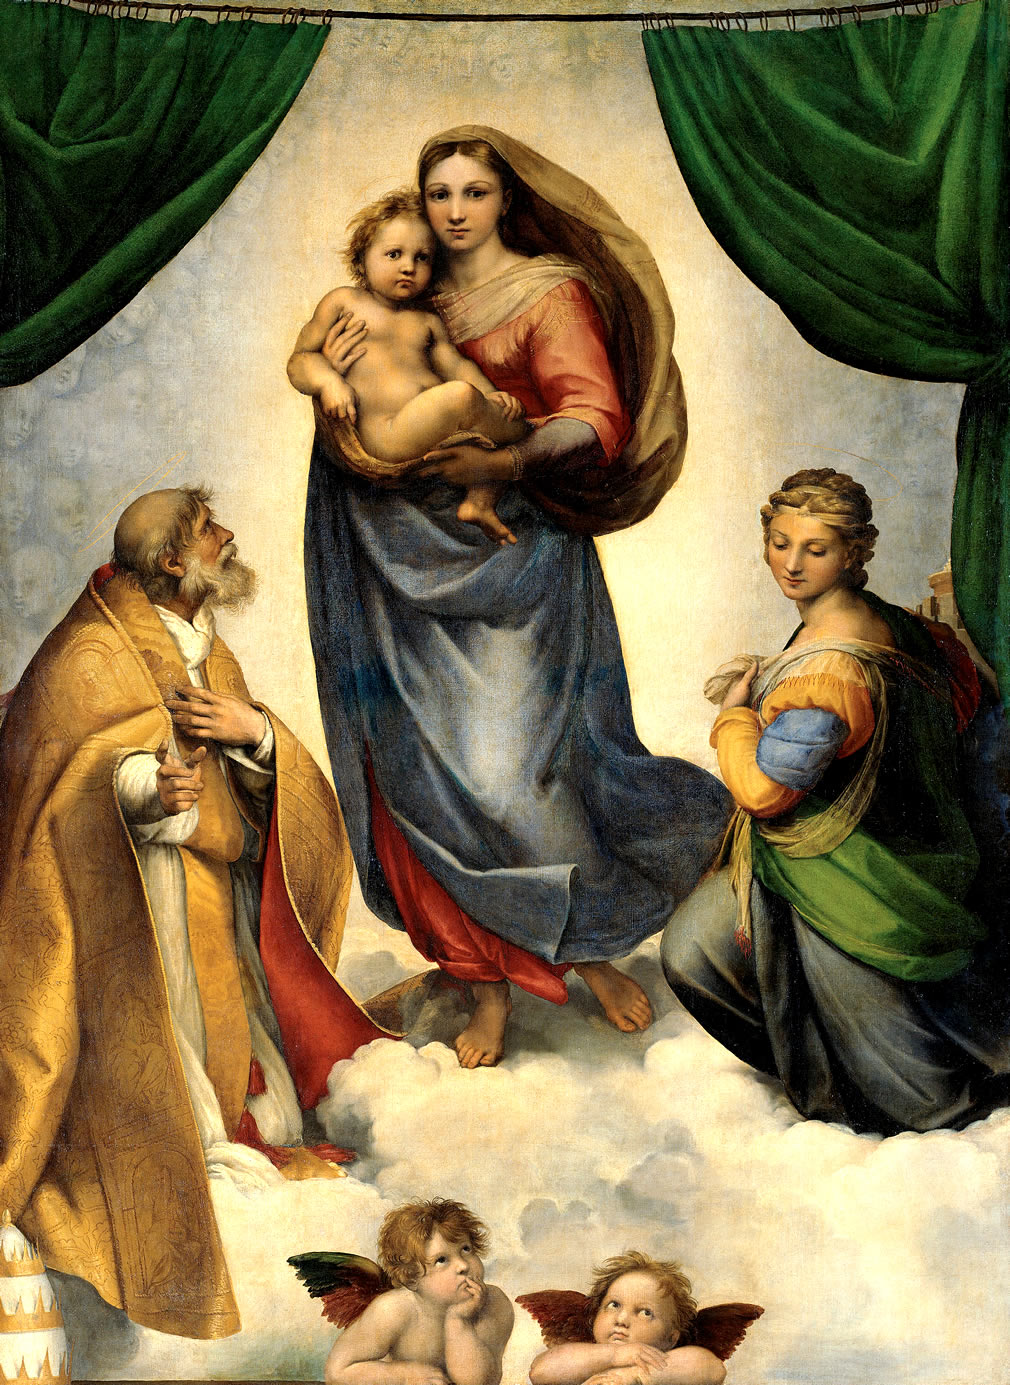 Sistine madonna by raphael sanzio symbolism description famous sistine madonna by raphael sanzio symbolism description famous paintings altarpiece of the virgin mary biocorpaavc Image collections